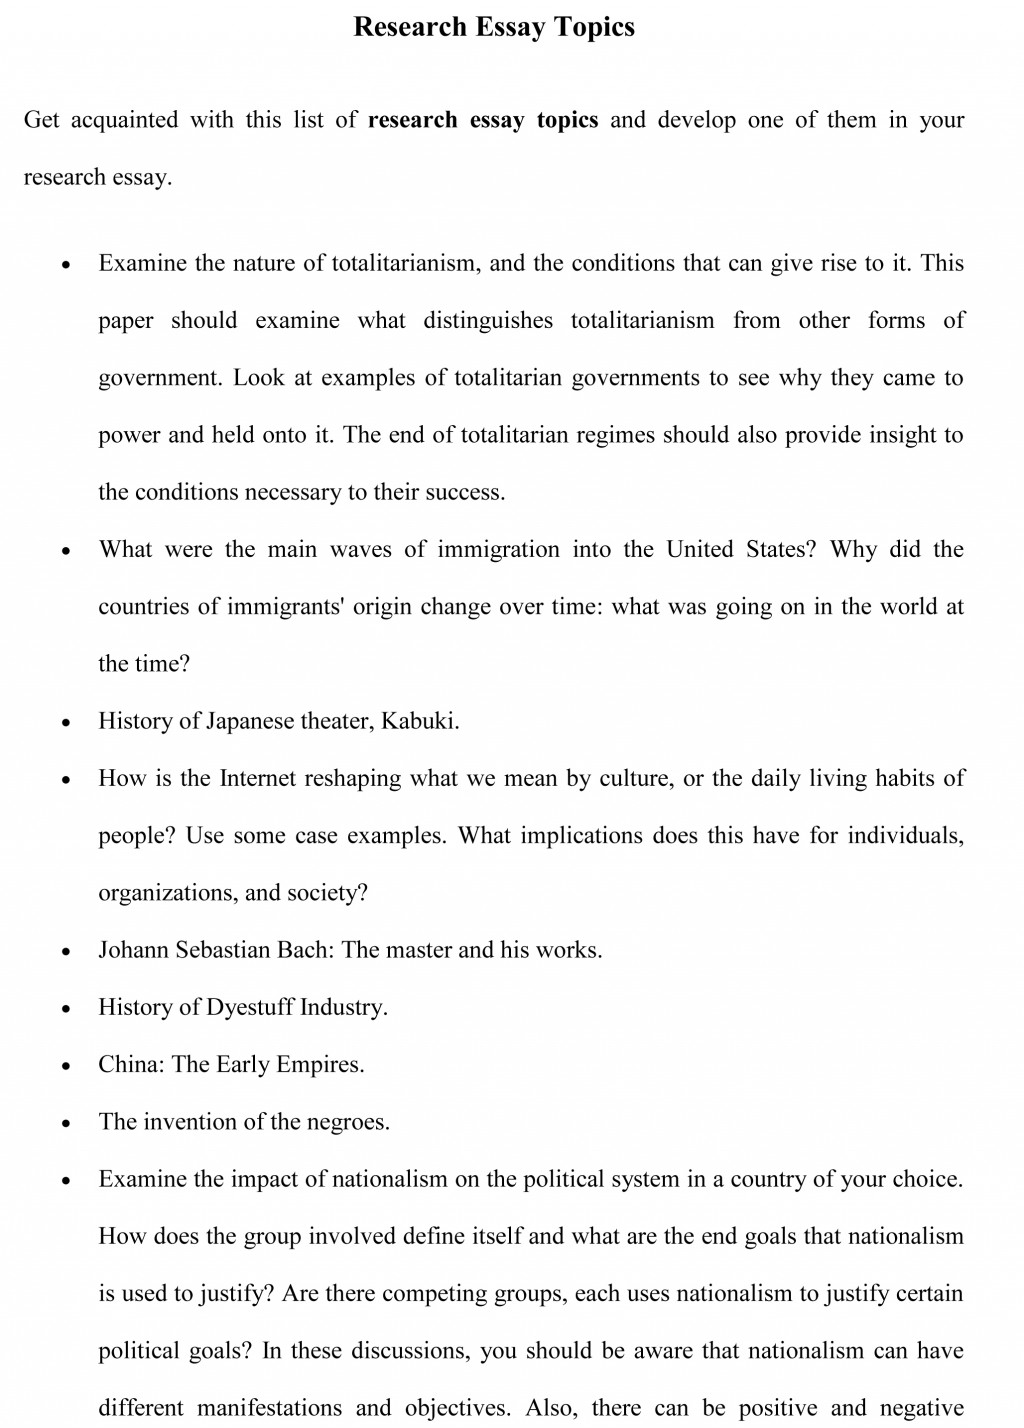 014 Research Paper Essay Topics Sample Great For History Stupendous Papers Good Us Best World Large